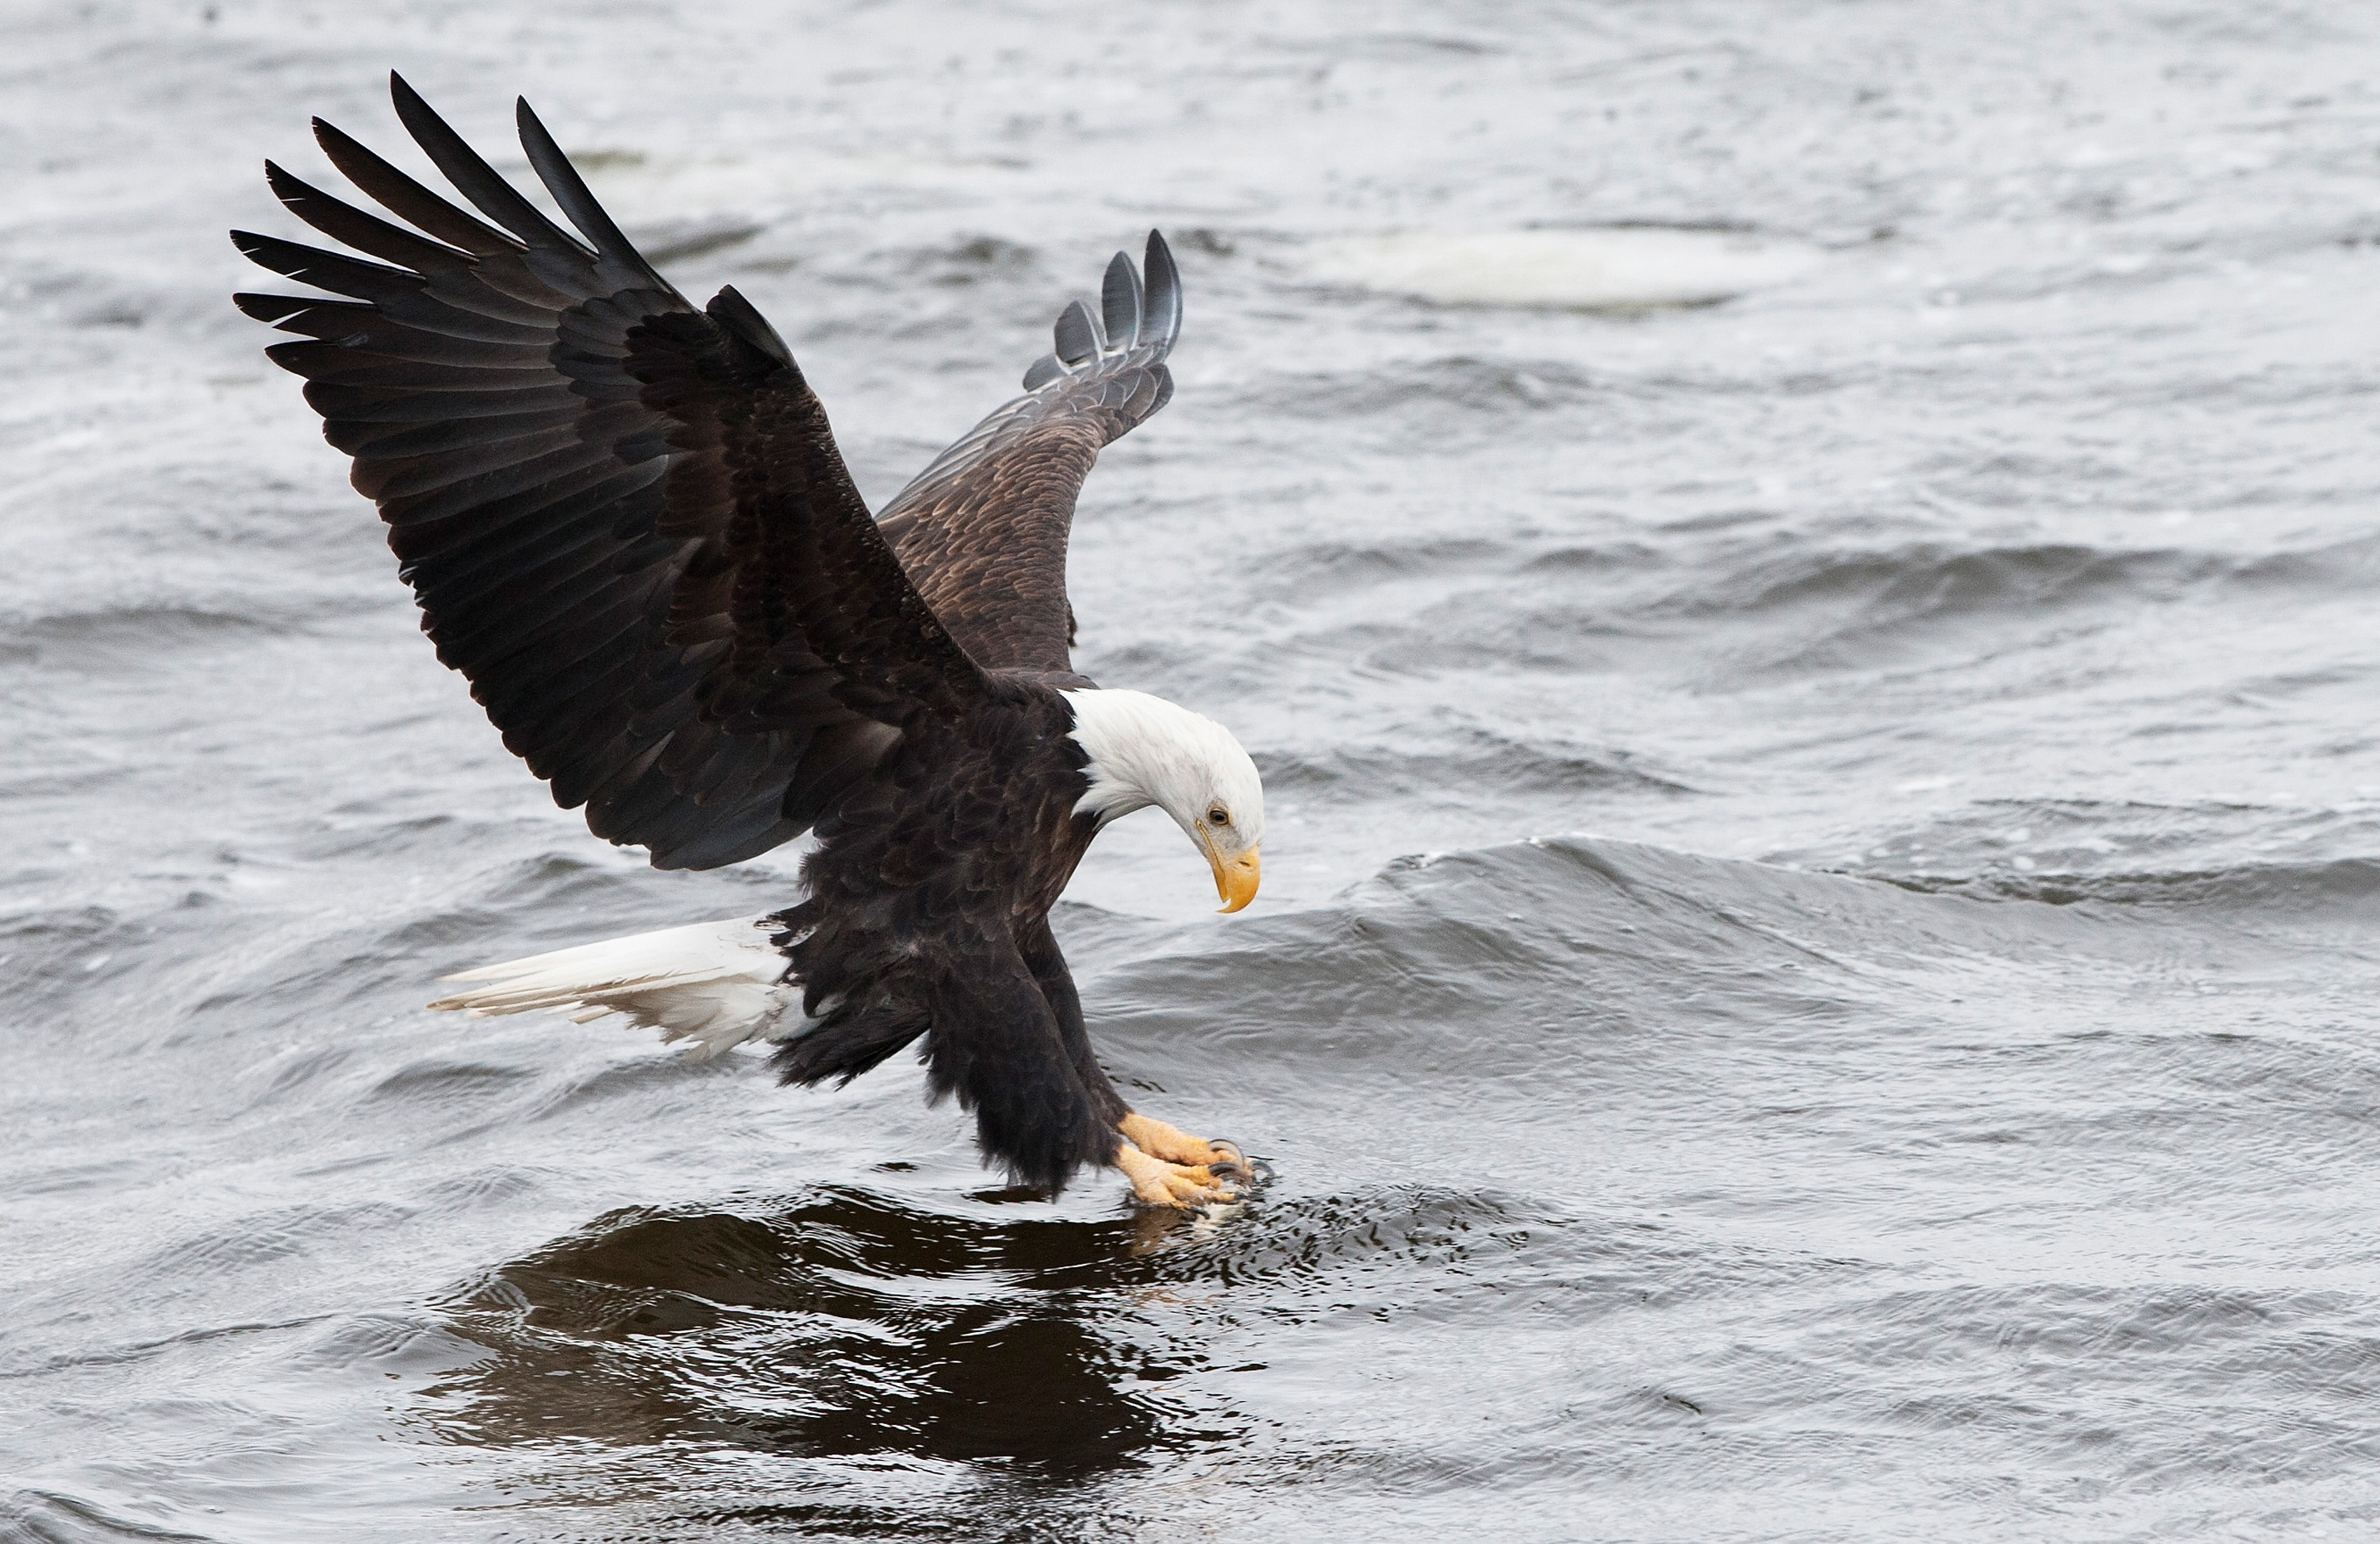 A bald eagle attempts to catch a fish at Mississippi River on January 11, 2015 in Rock Island, Illinois.